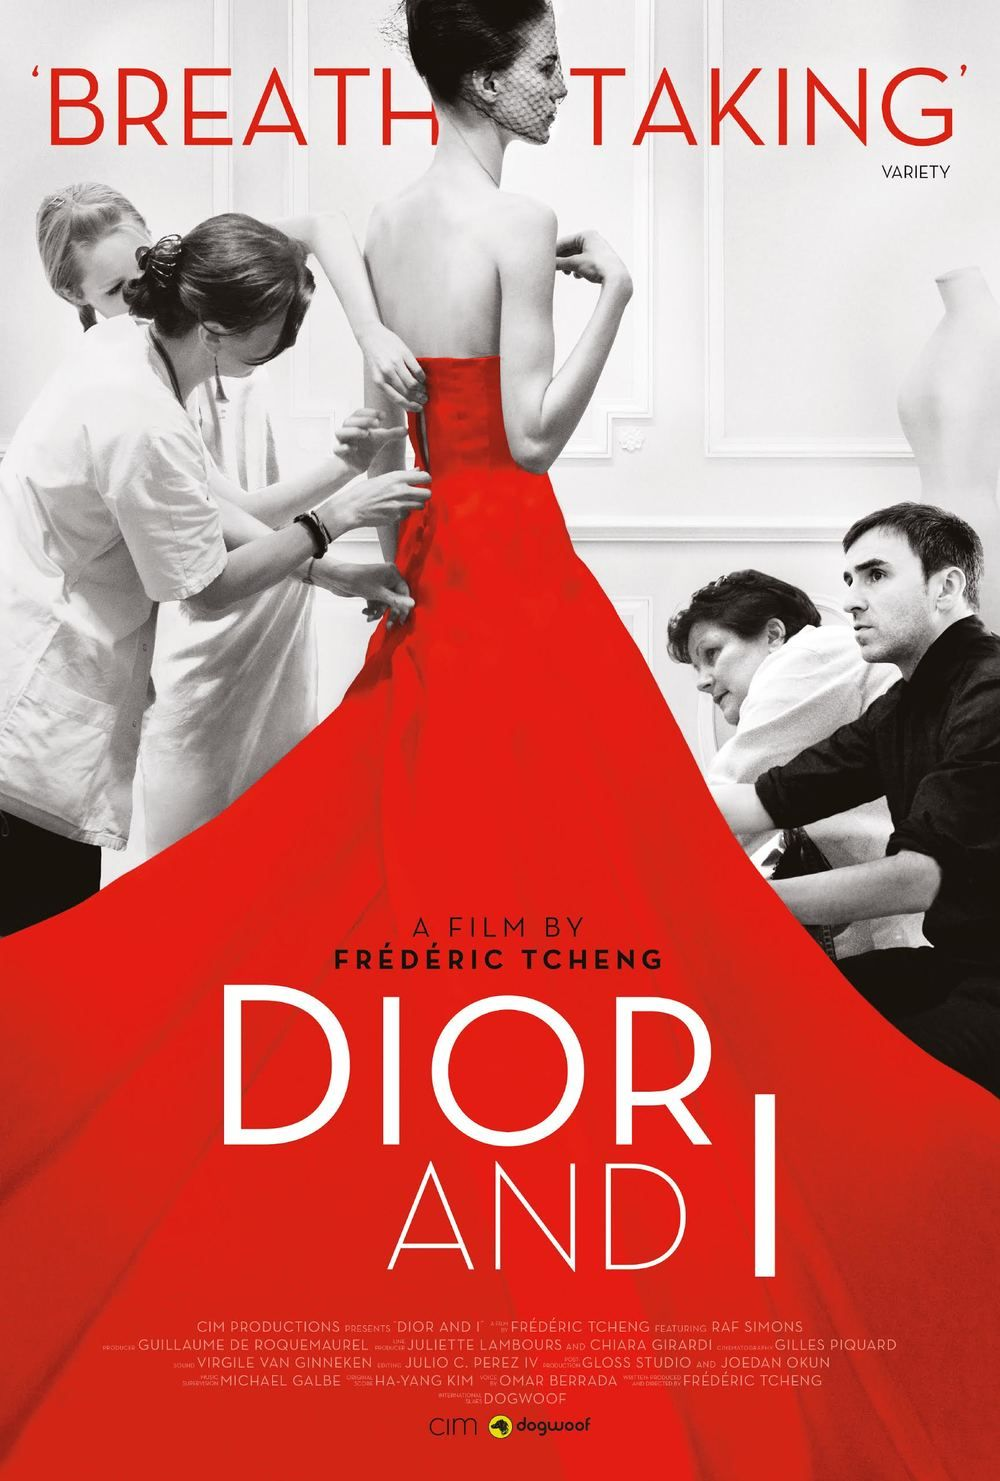 Frédéric Tcheng's Dior and I (2014)